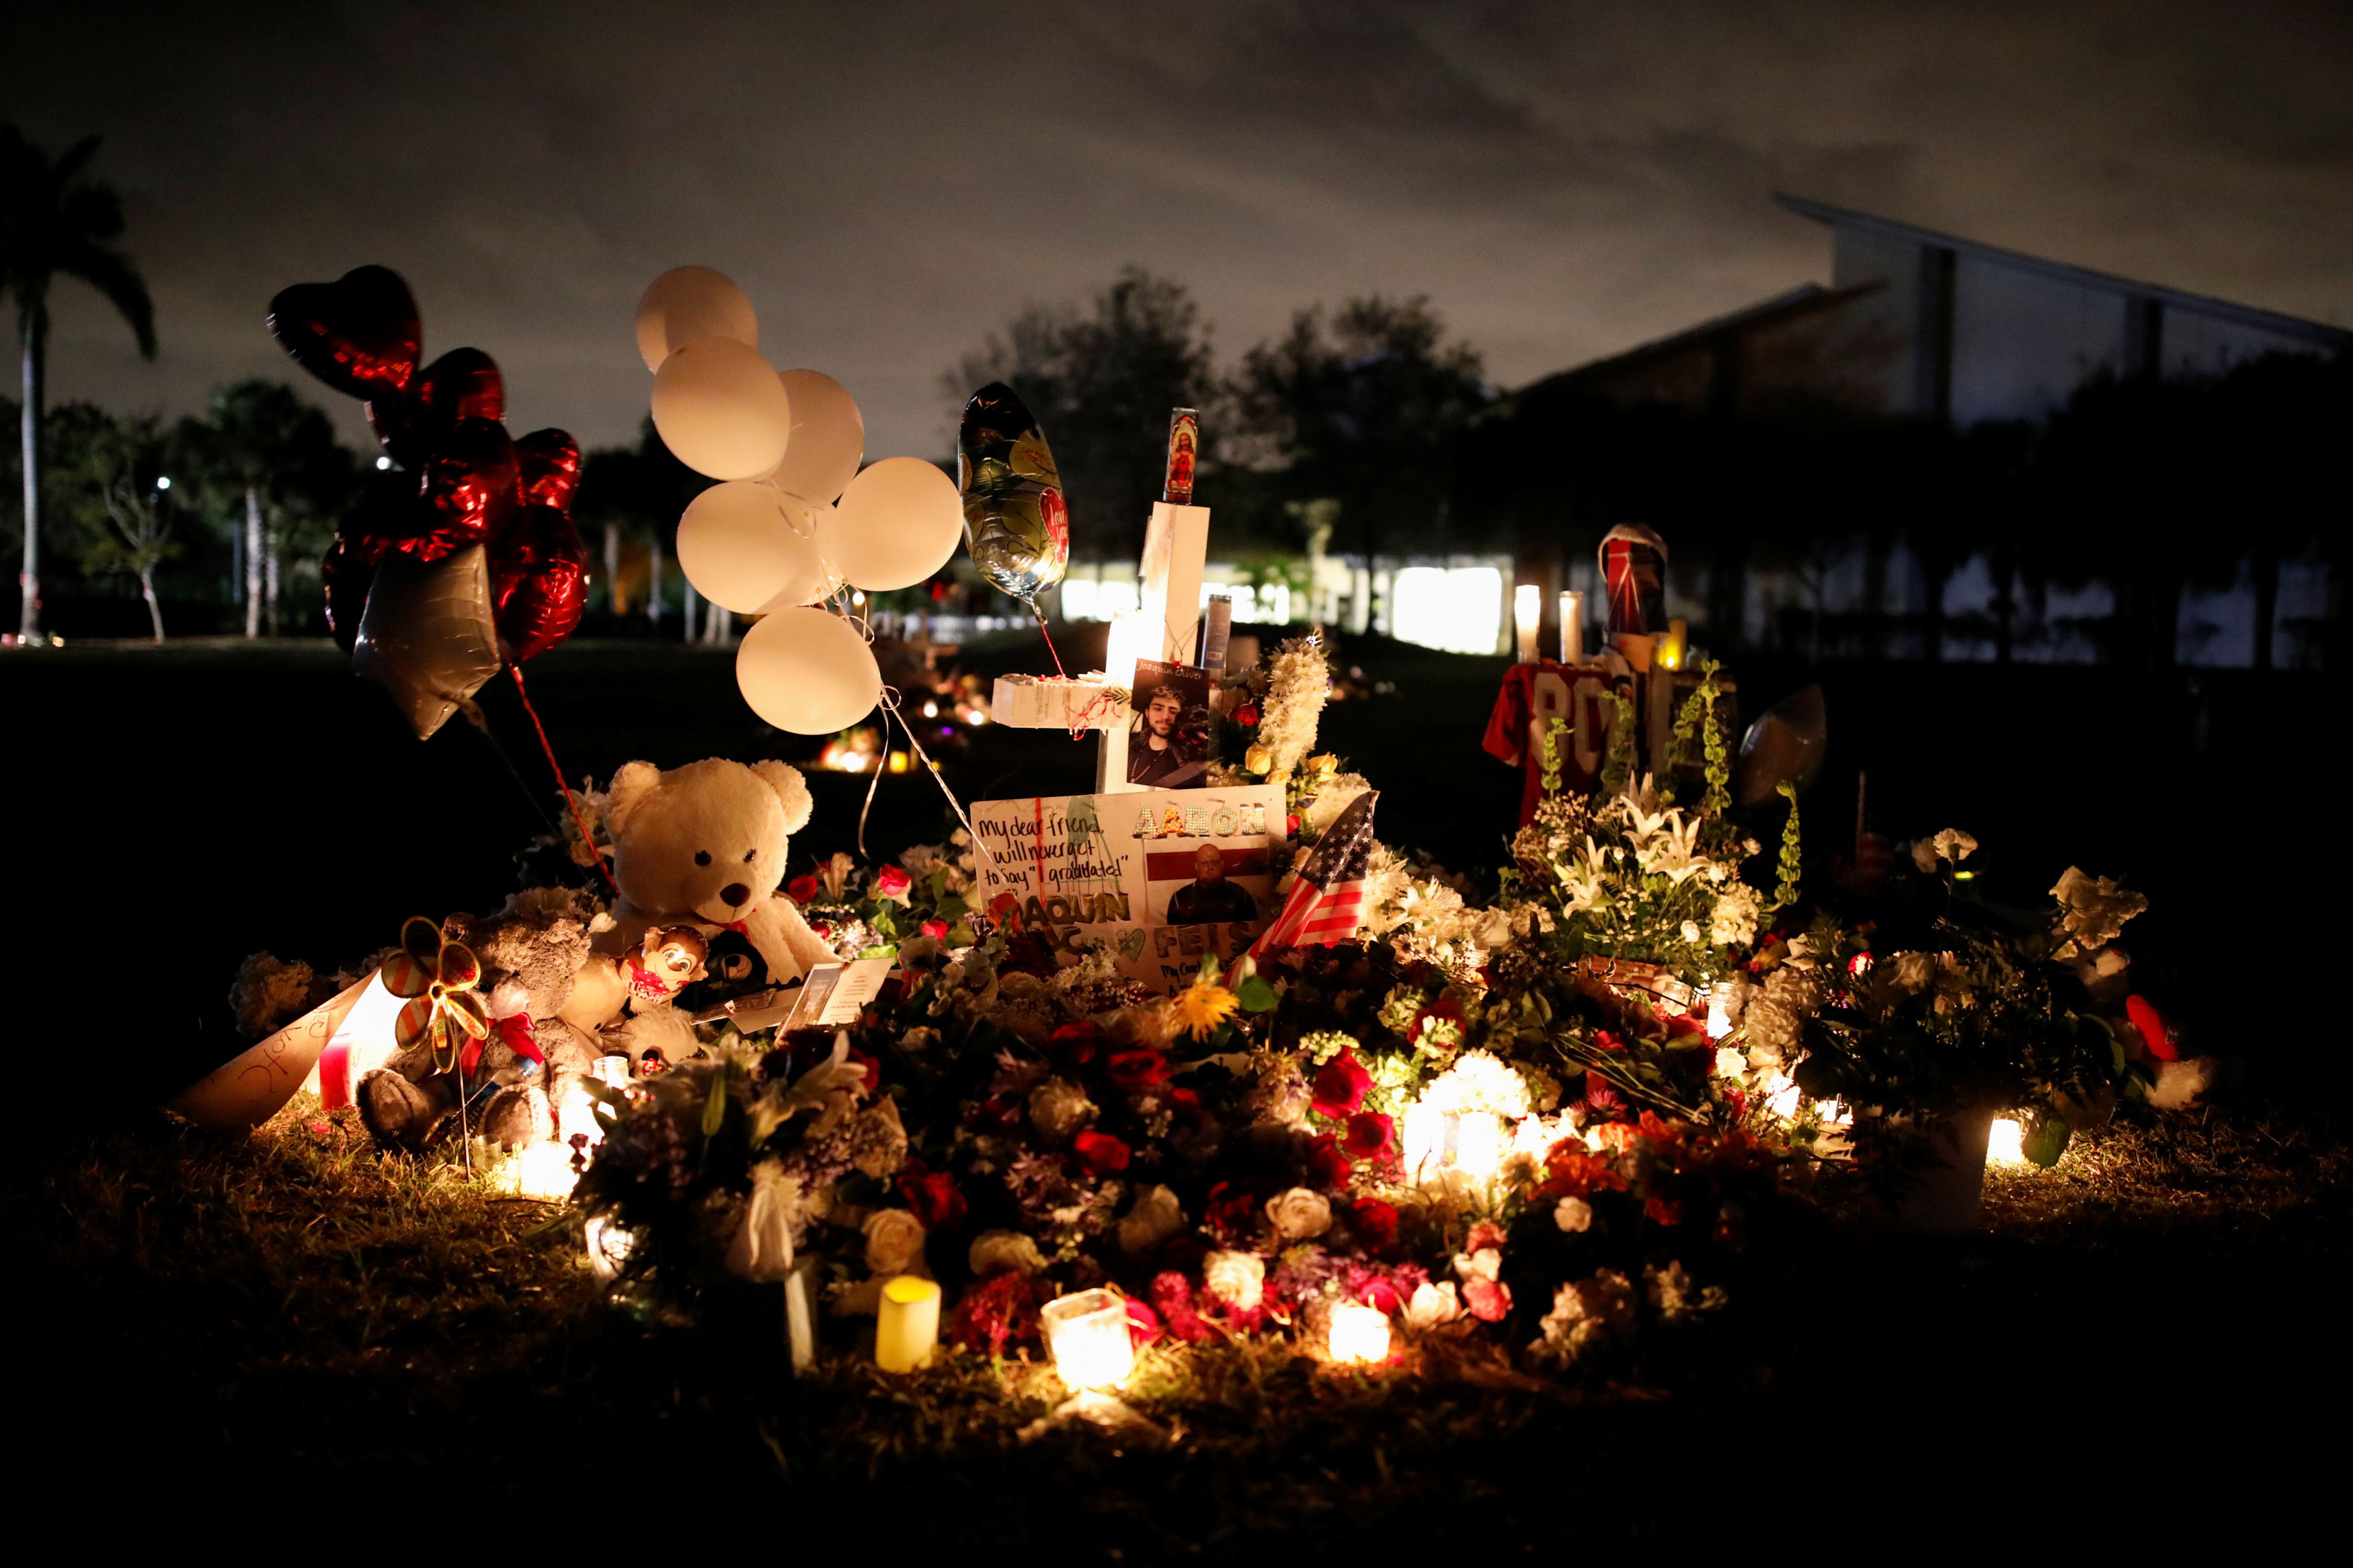 Pictures of Joaquin Oliver and Aaron Feis, victims of the mass shooting at Marjory Stoneman Douglas High School, are seen on a cross placed in a park to commemorate the victims, in Parkland, Florida, U.S., February 19, 2018. REUTERS/Carlos Garcia Rawlins